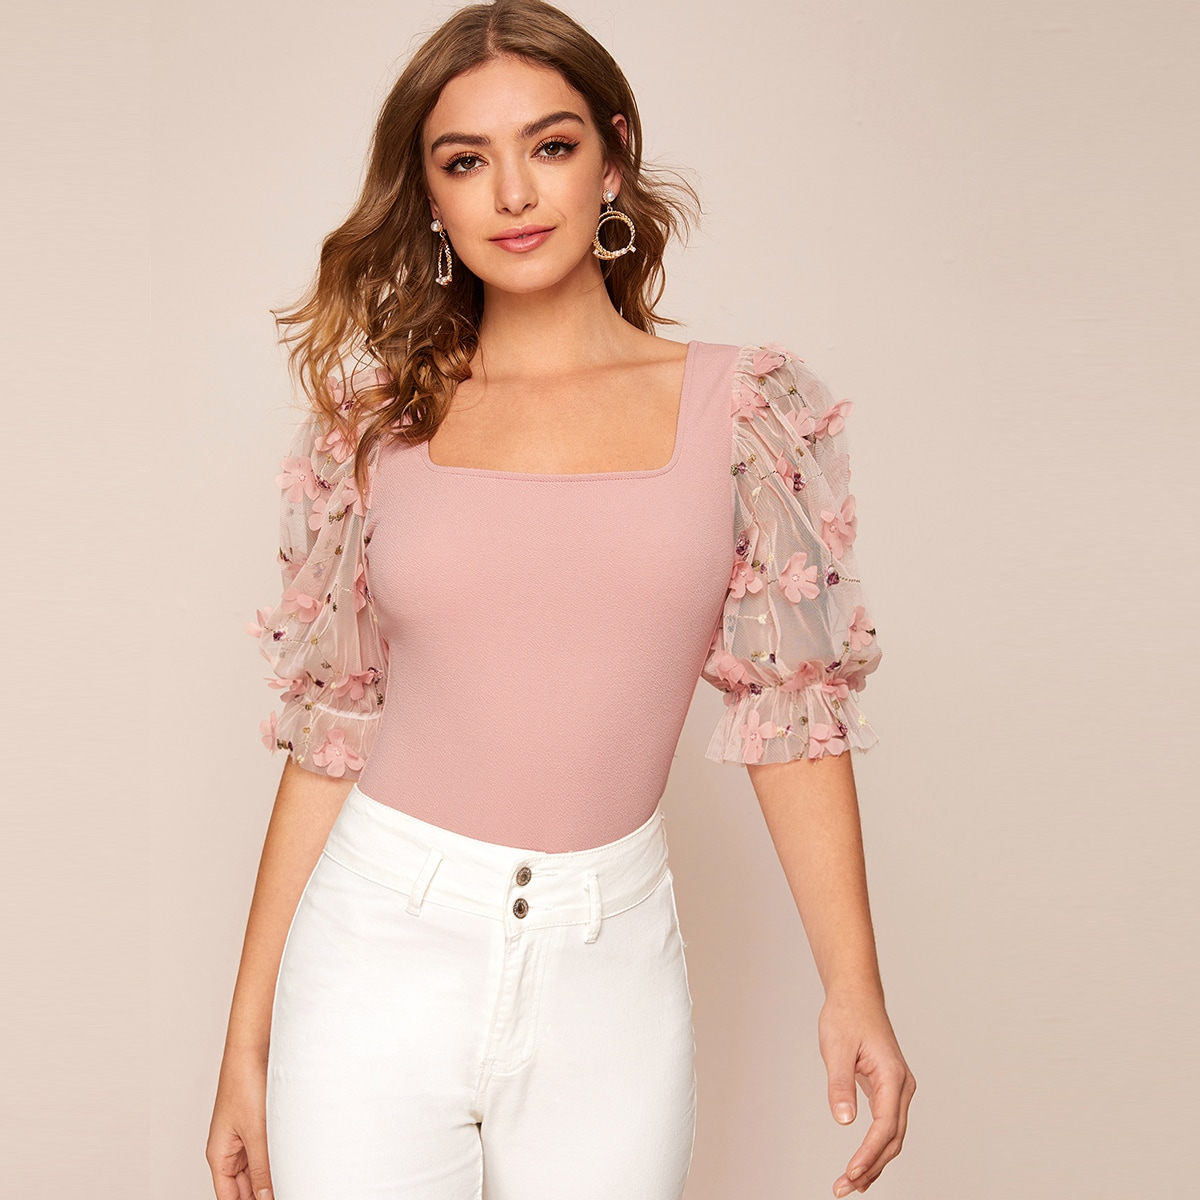 SHEIN / Square Neck Appliques Mesh Sleeve Top